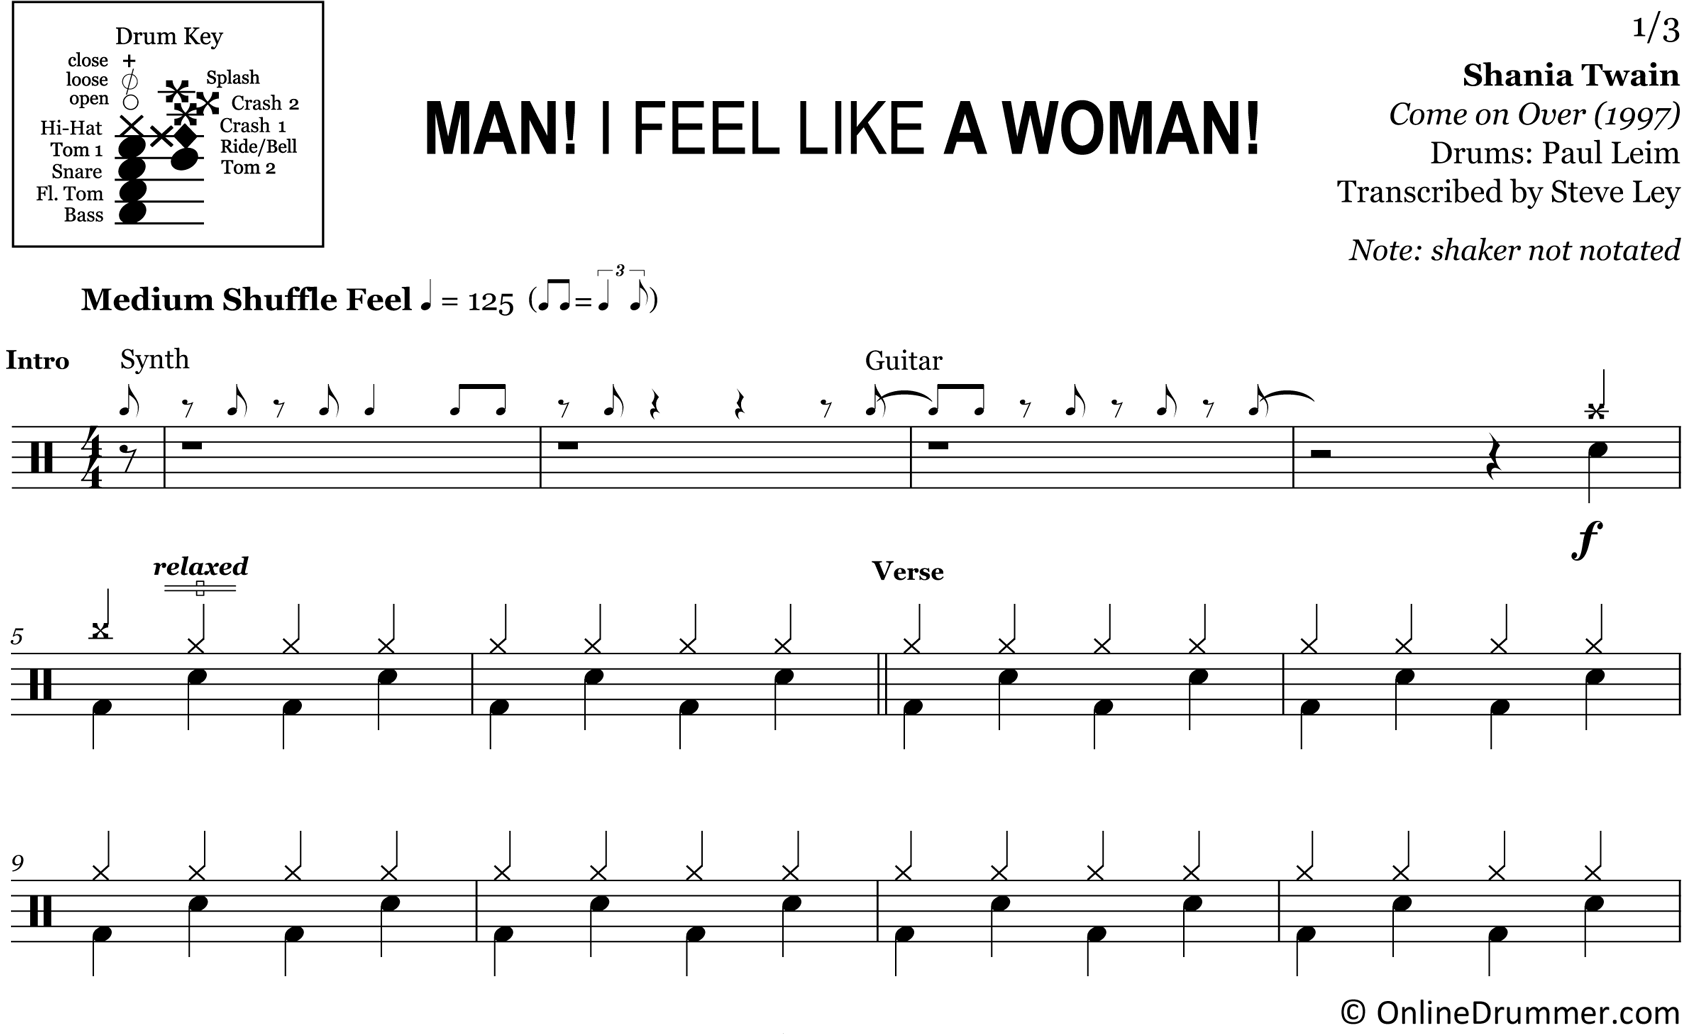 Man! I Feel Like a Woman! - Shania Twain - Drum Sheet Music